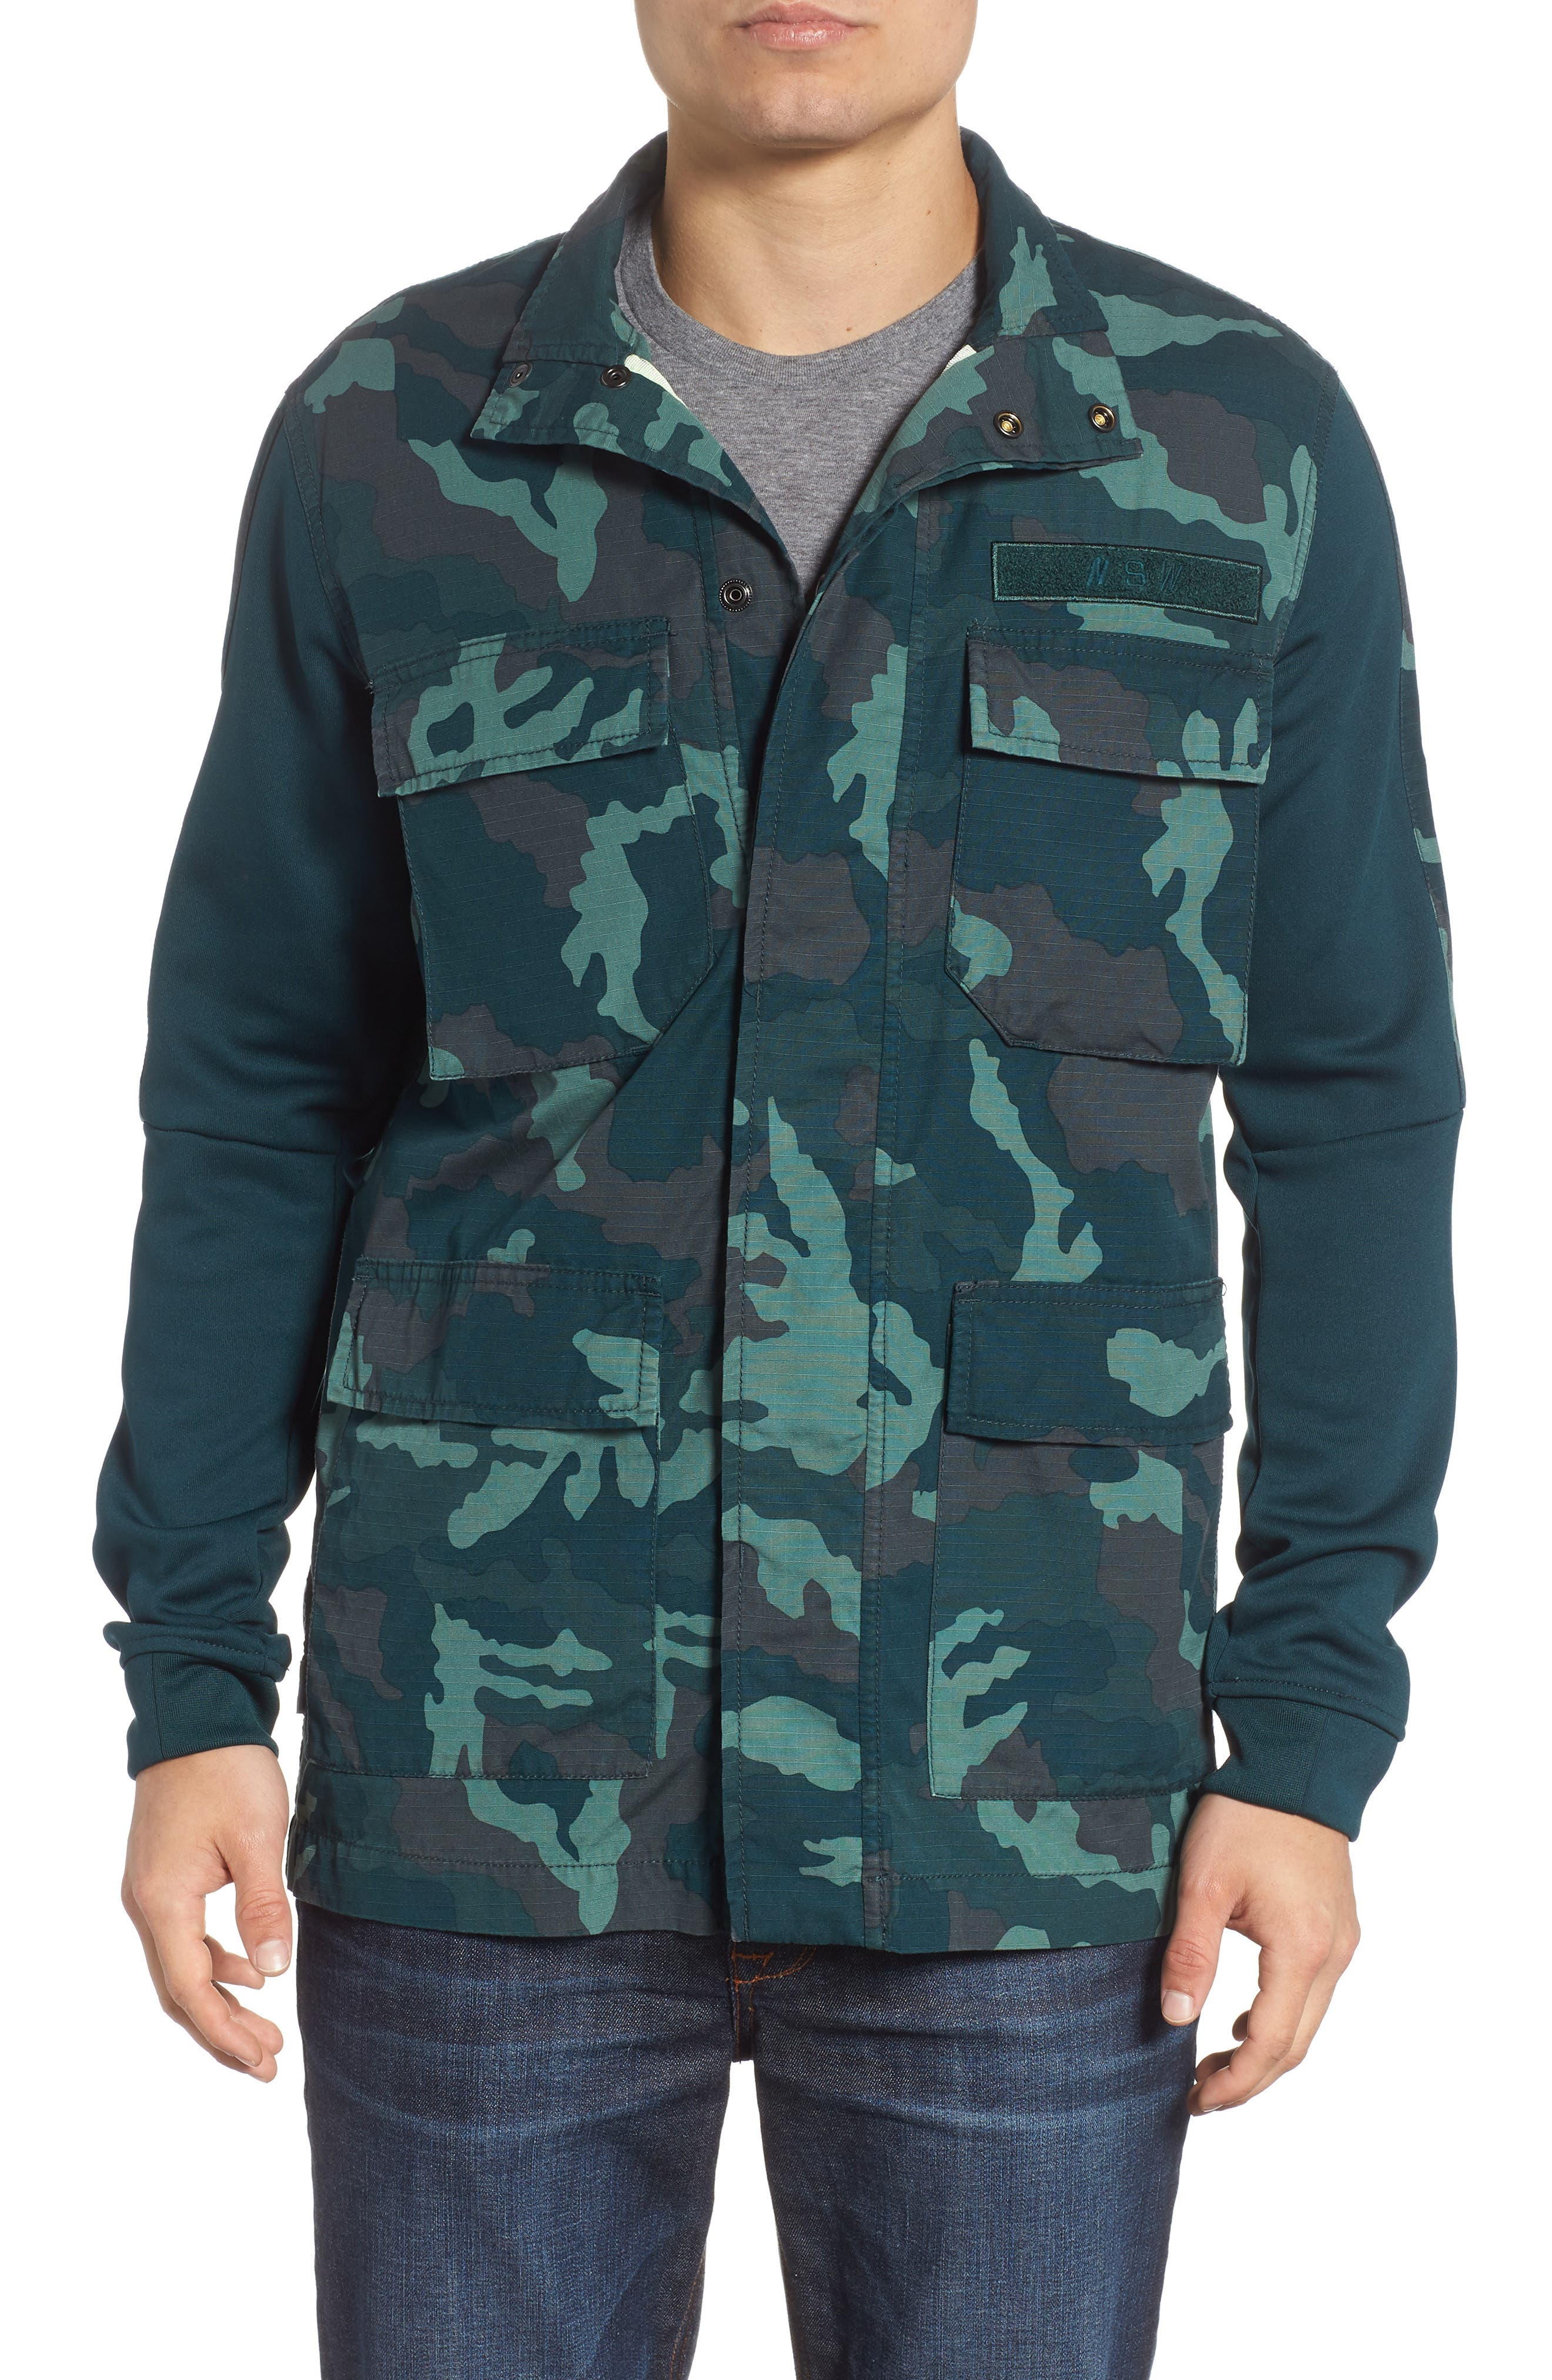 NSW Lightweight Camo Field Jacket,                             Main thumbnail 1, color,                             MIDNIGHT SPRUCE